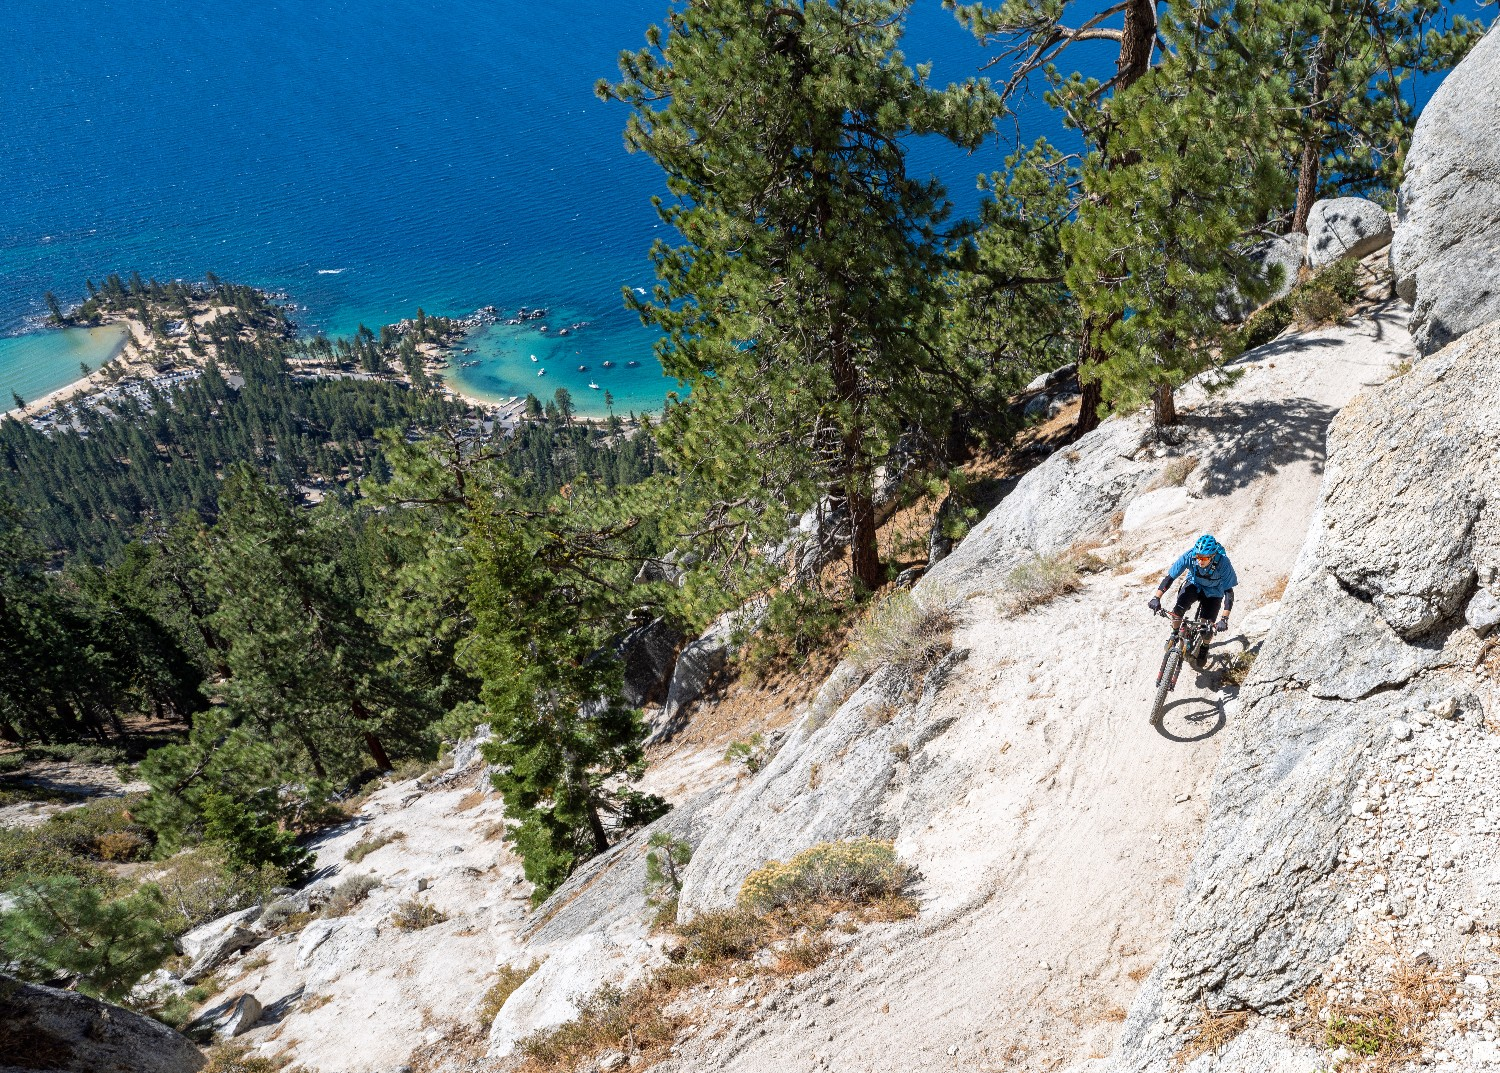 Mountain biking the Flume Trail with Lake Tahoe in background.